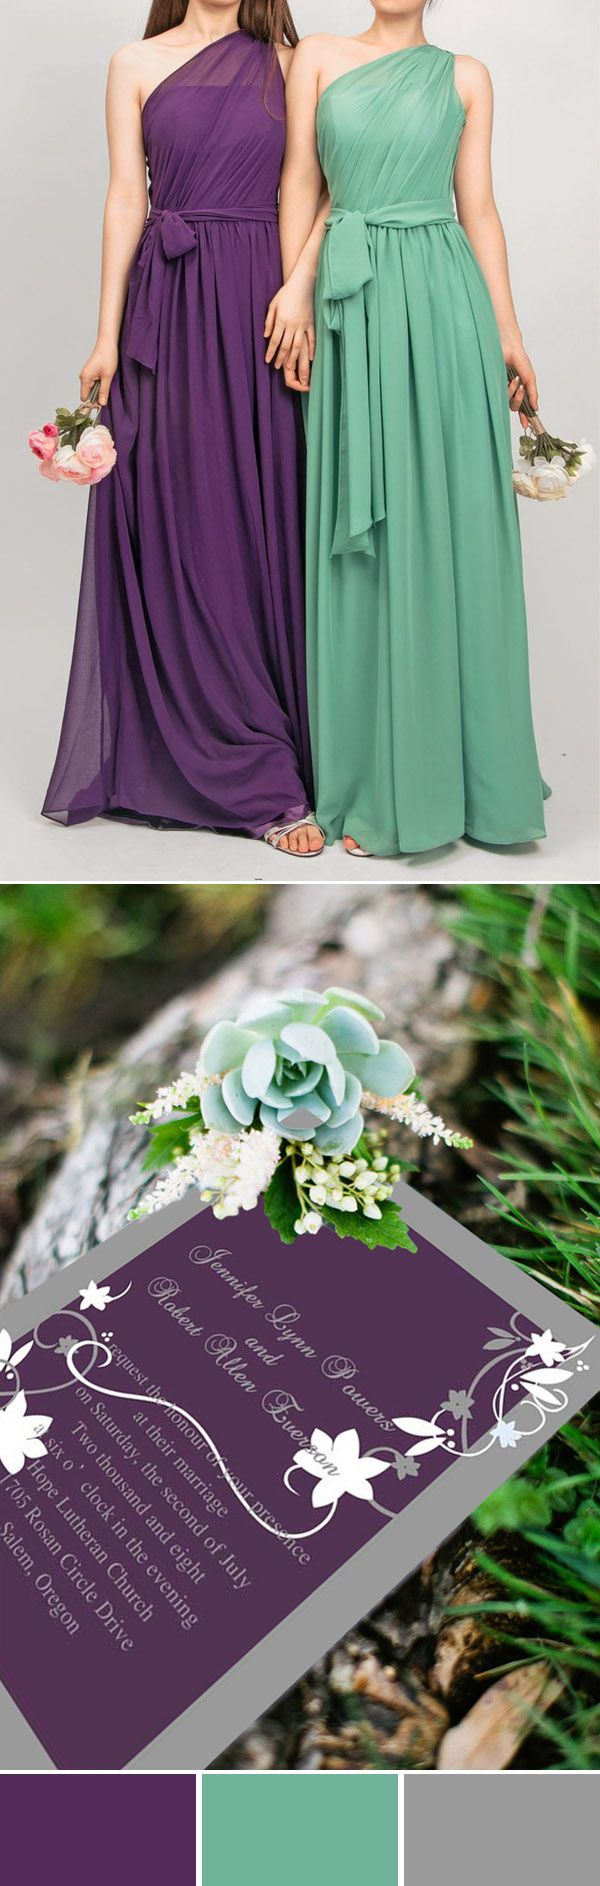 purple and mint green wedding colors, invitation and bridesmaid dresses